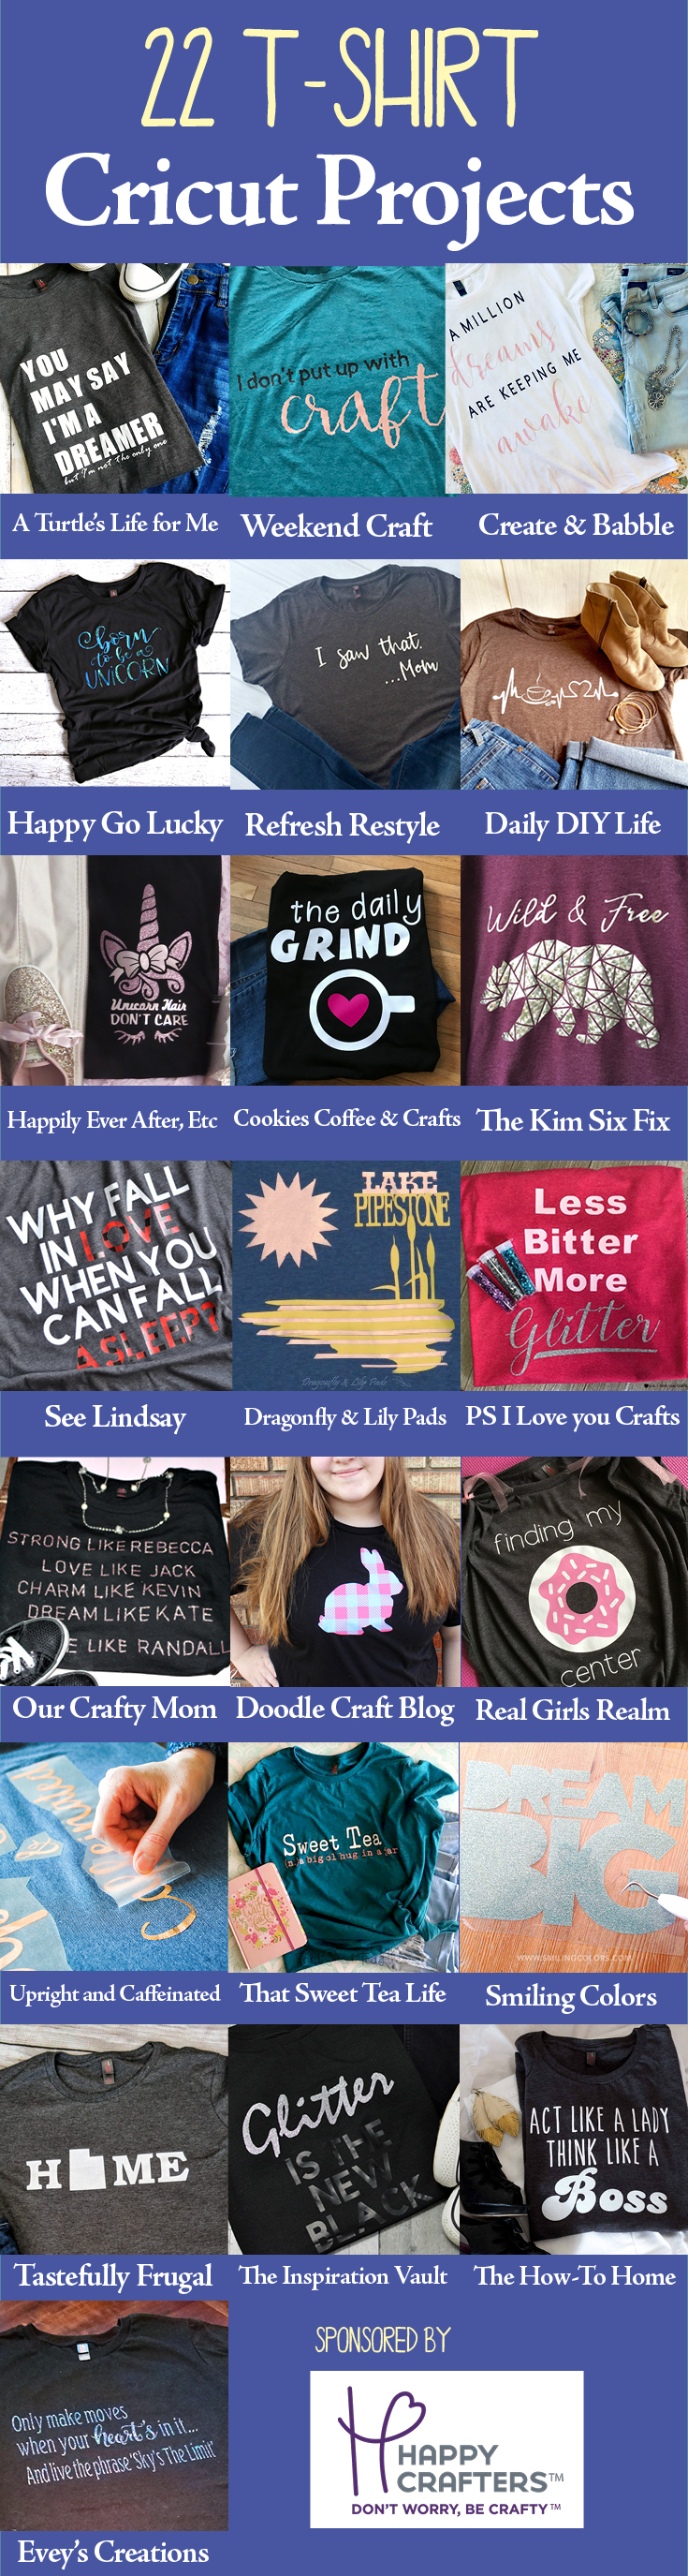 22 Cricut T-Shirt Projects